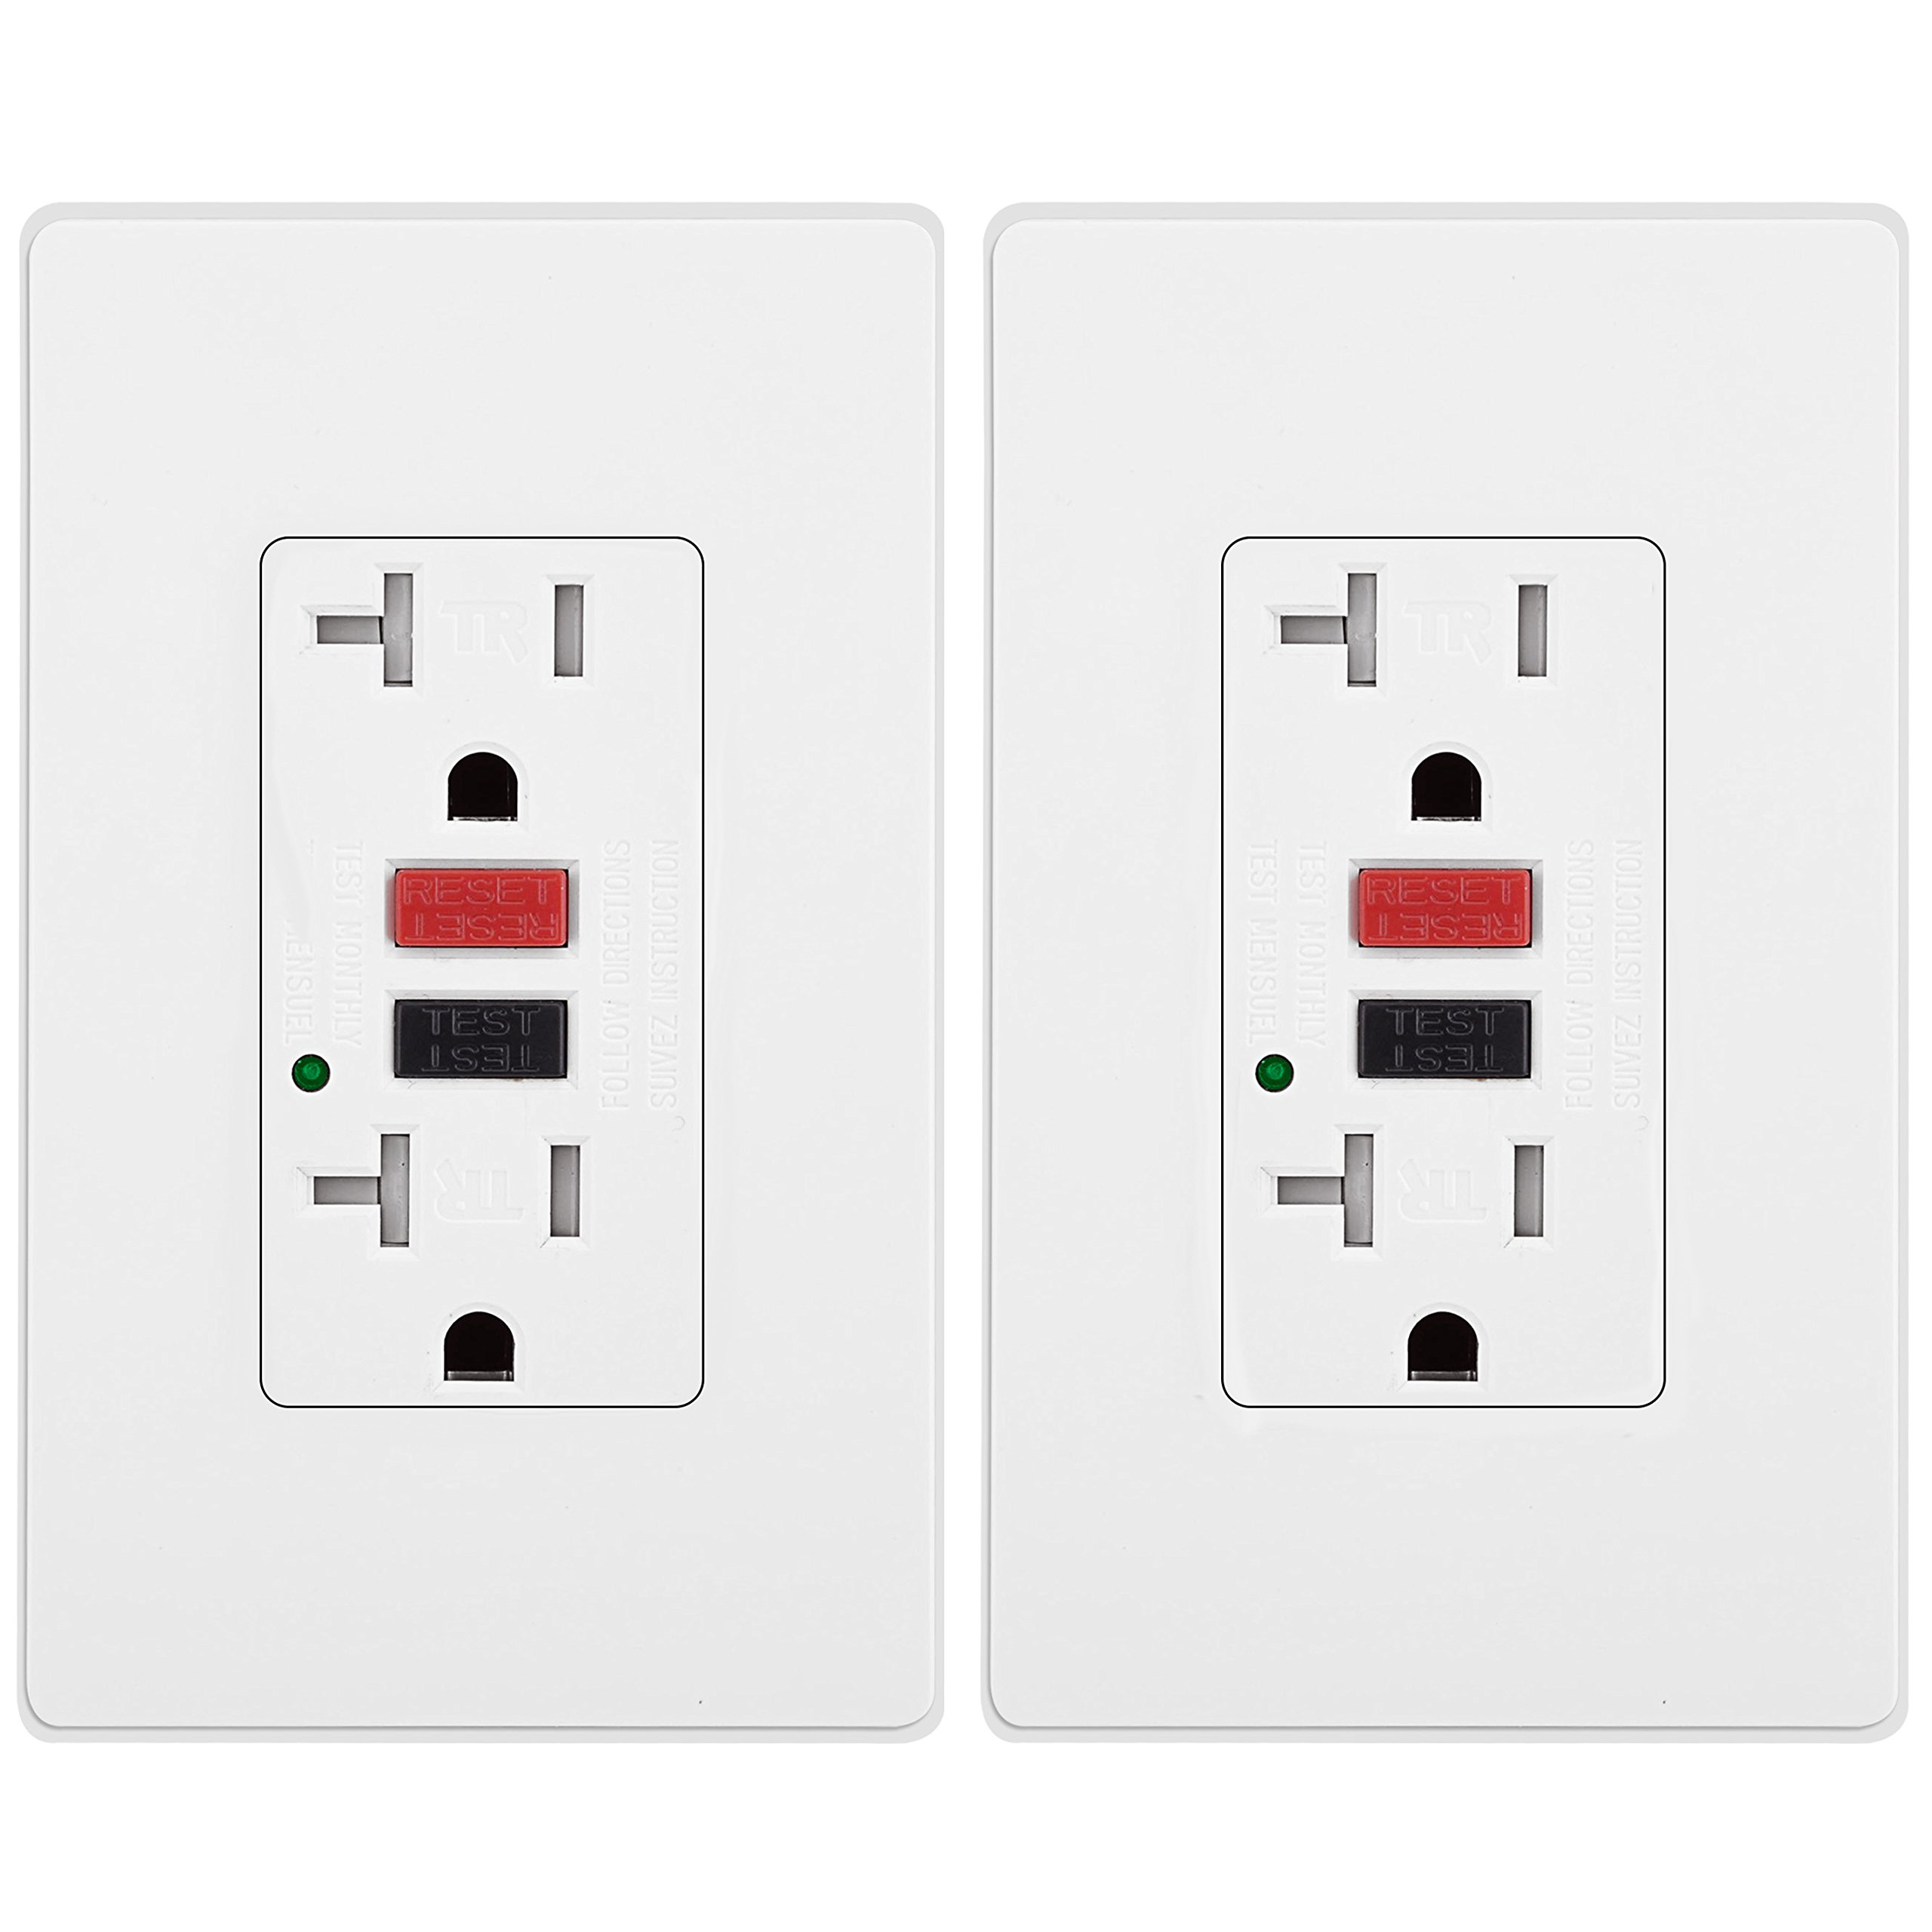 [2 Pack] BESTTEN Tamper-Resistant GFCI Receptacle Outlet (20A/125V/2500W), LED Indicator, 2 Types of Wall Plates and Screws Included, ETL Certified, White